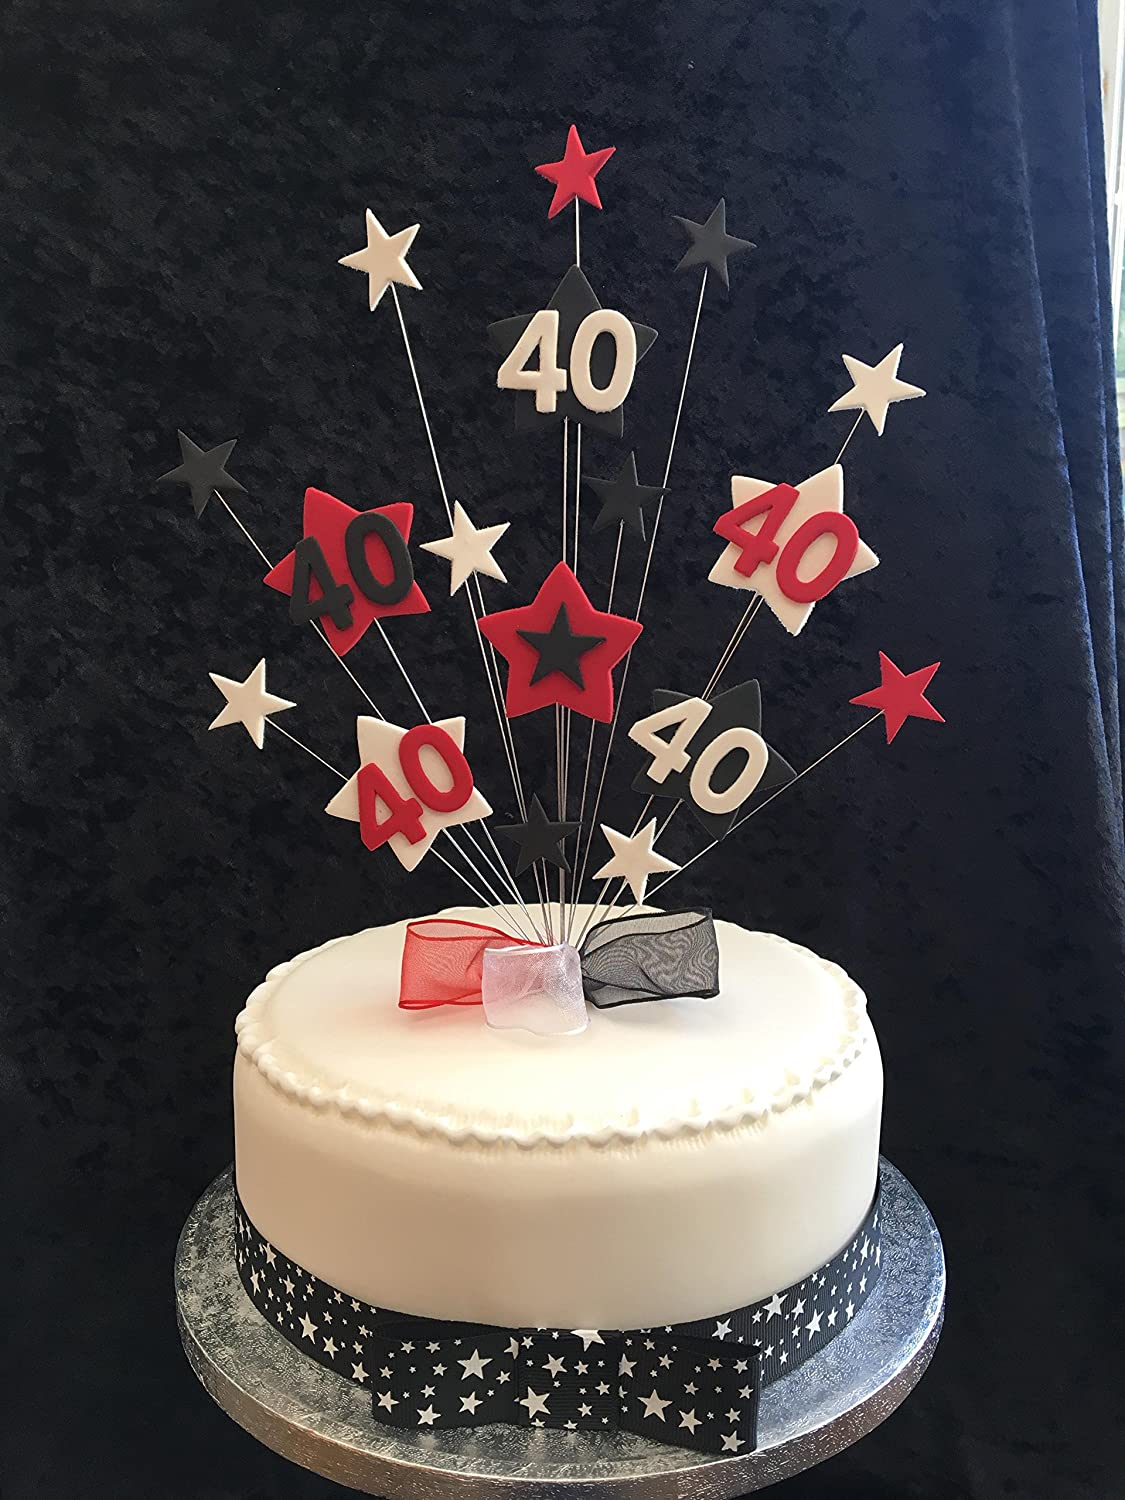 Tremendous 40Th Birthday Cake Topper Red Black And White Stars Plus 1 X Funny Birthday Cards Online Alyptdamsfinfo